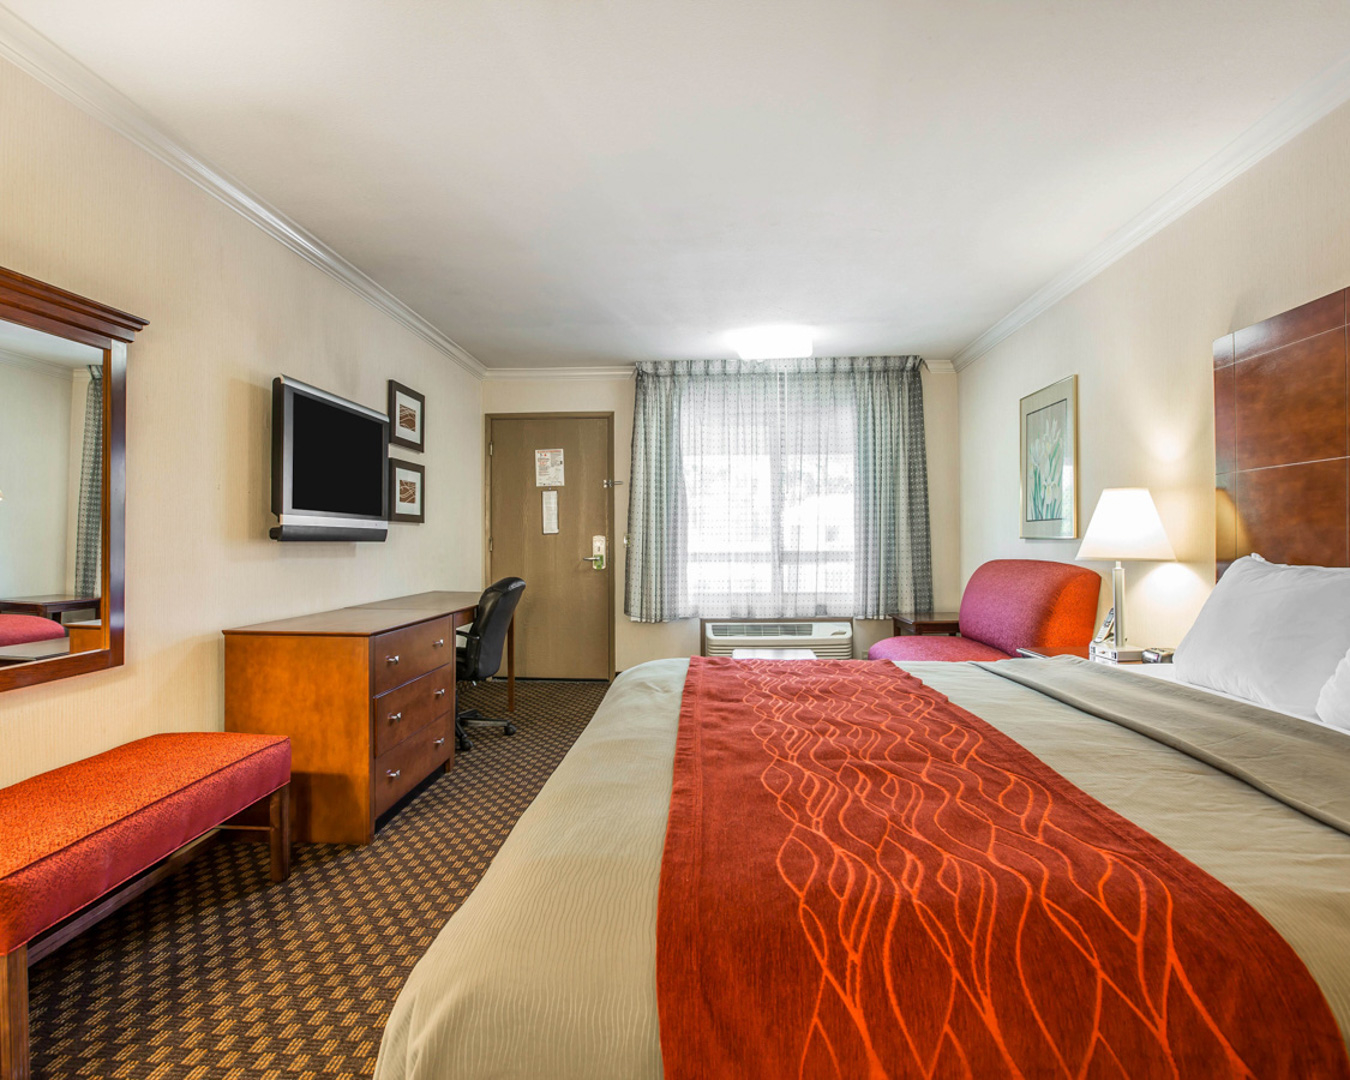 Comfort Inn Near Pasadena Civic Auditorium Coupons